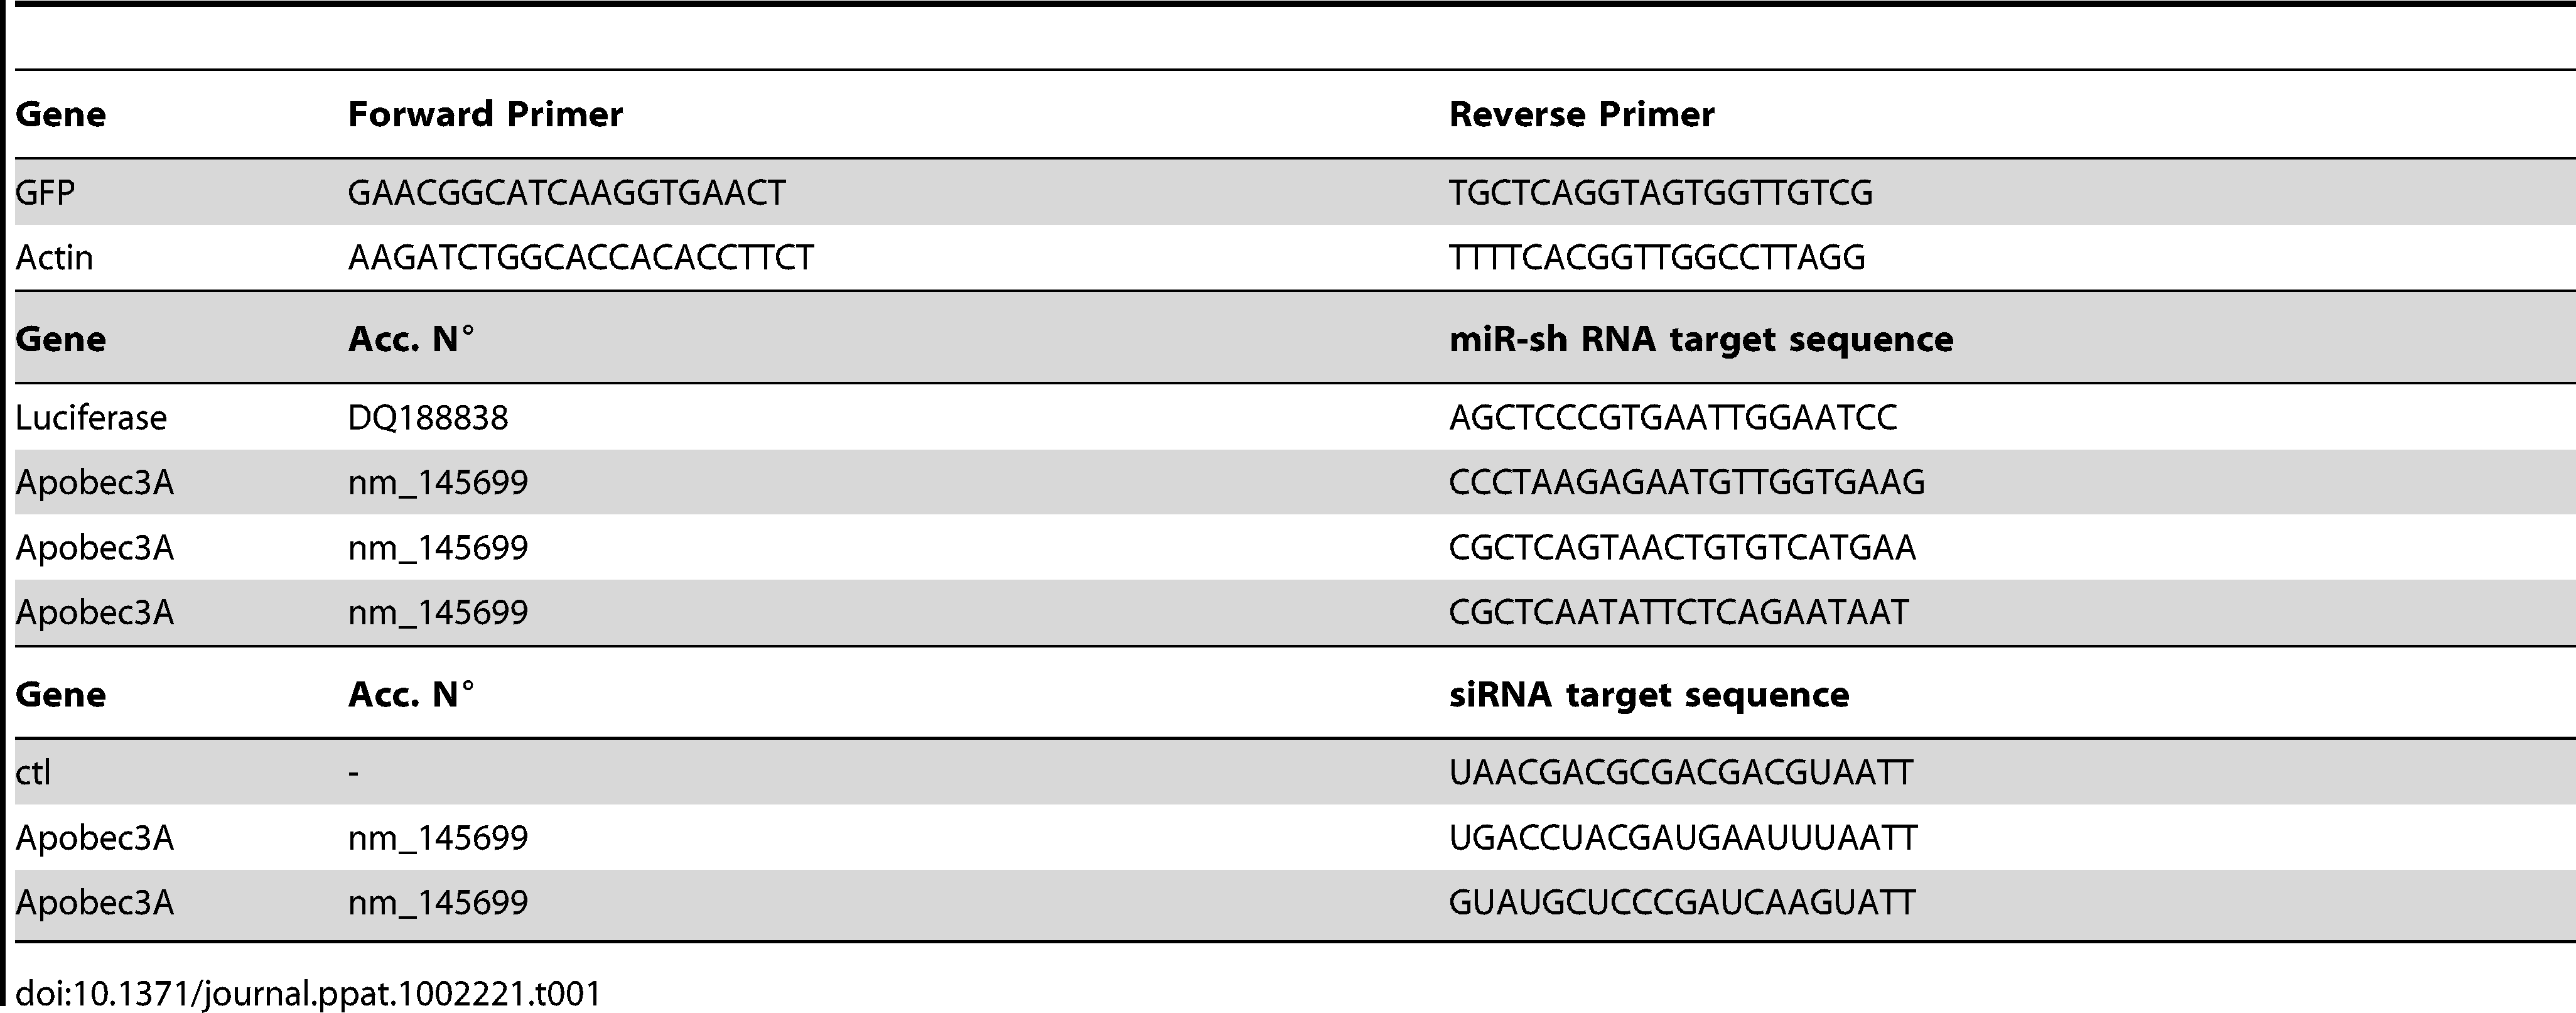 List of primers and sequences used.